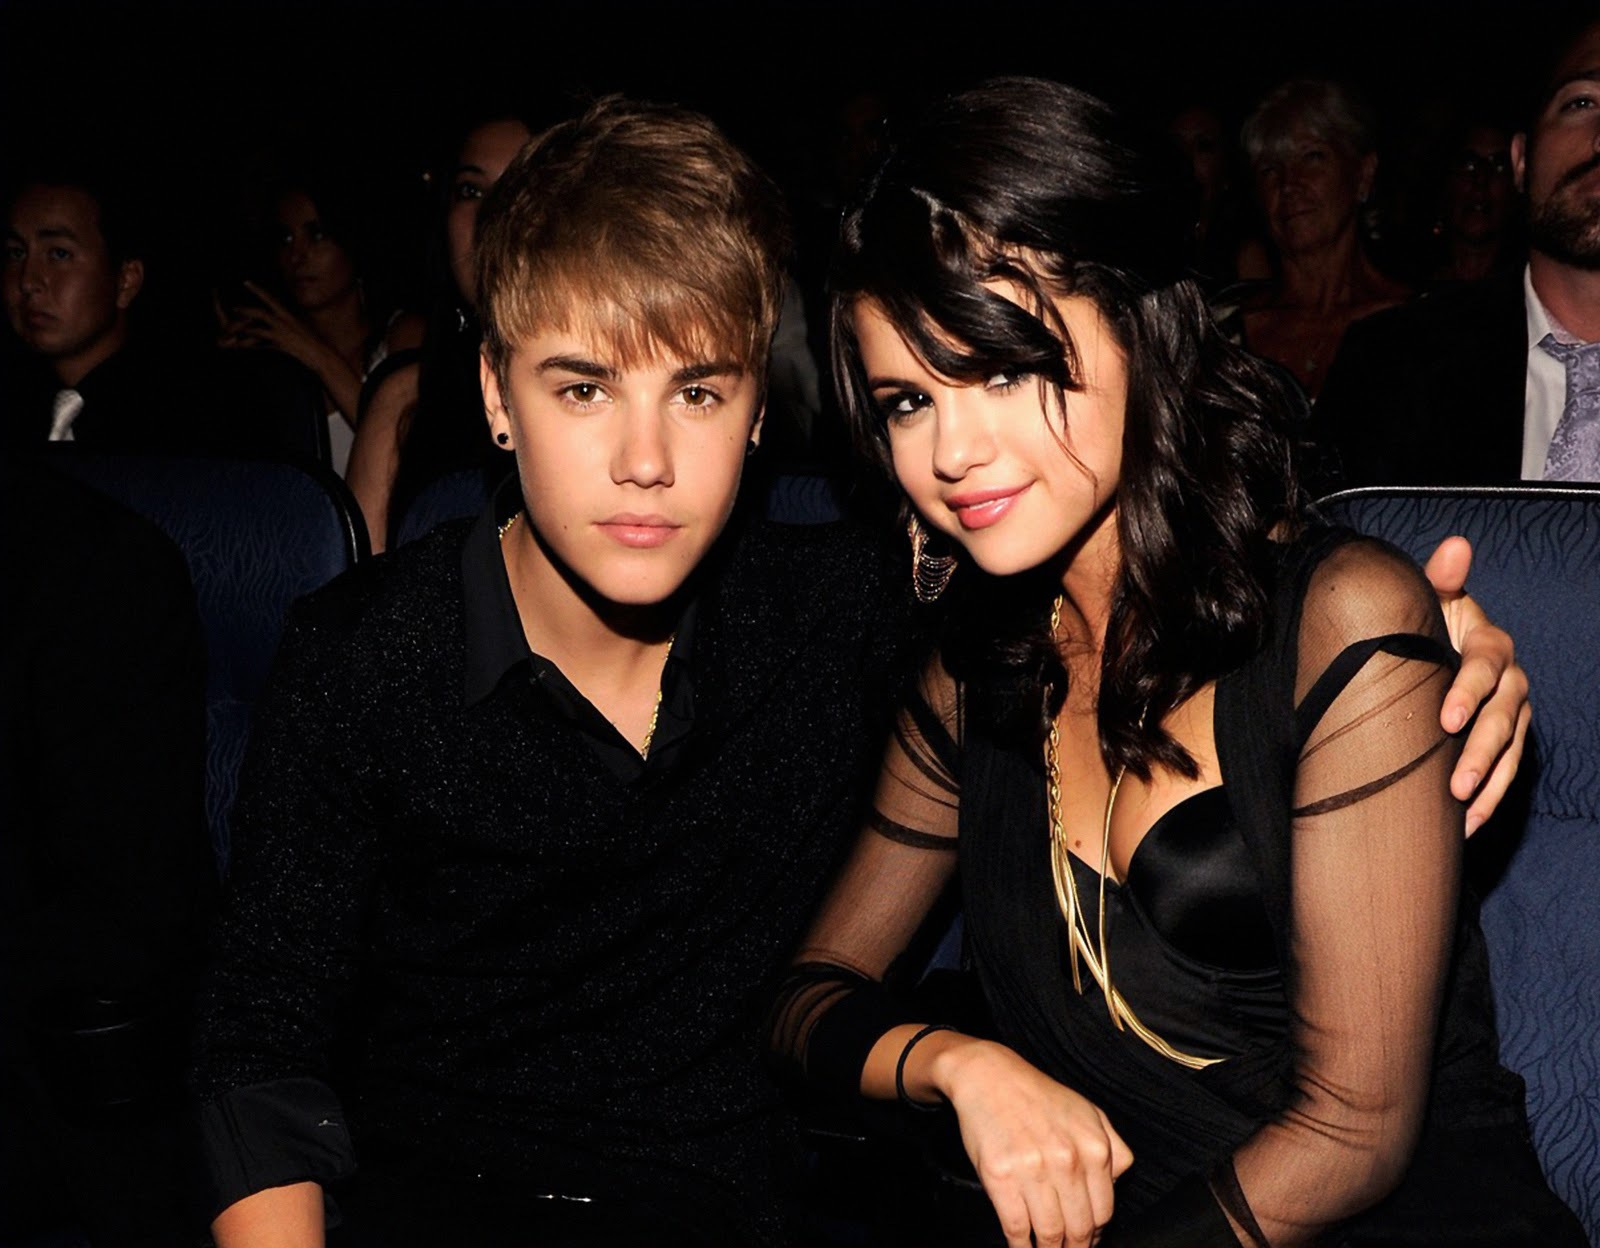 Every relationship has its ups and downs but when were talking about Justin Bieber and Selena Gomez thats approximately seven years of roller